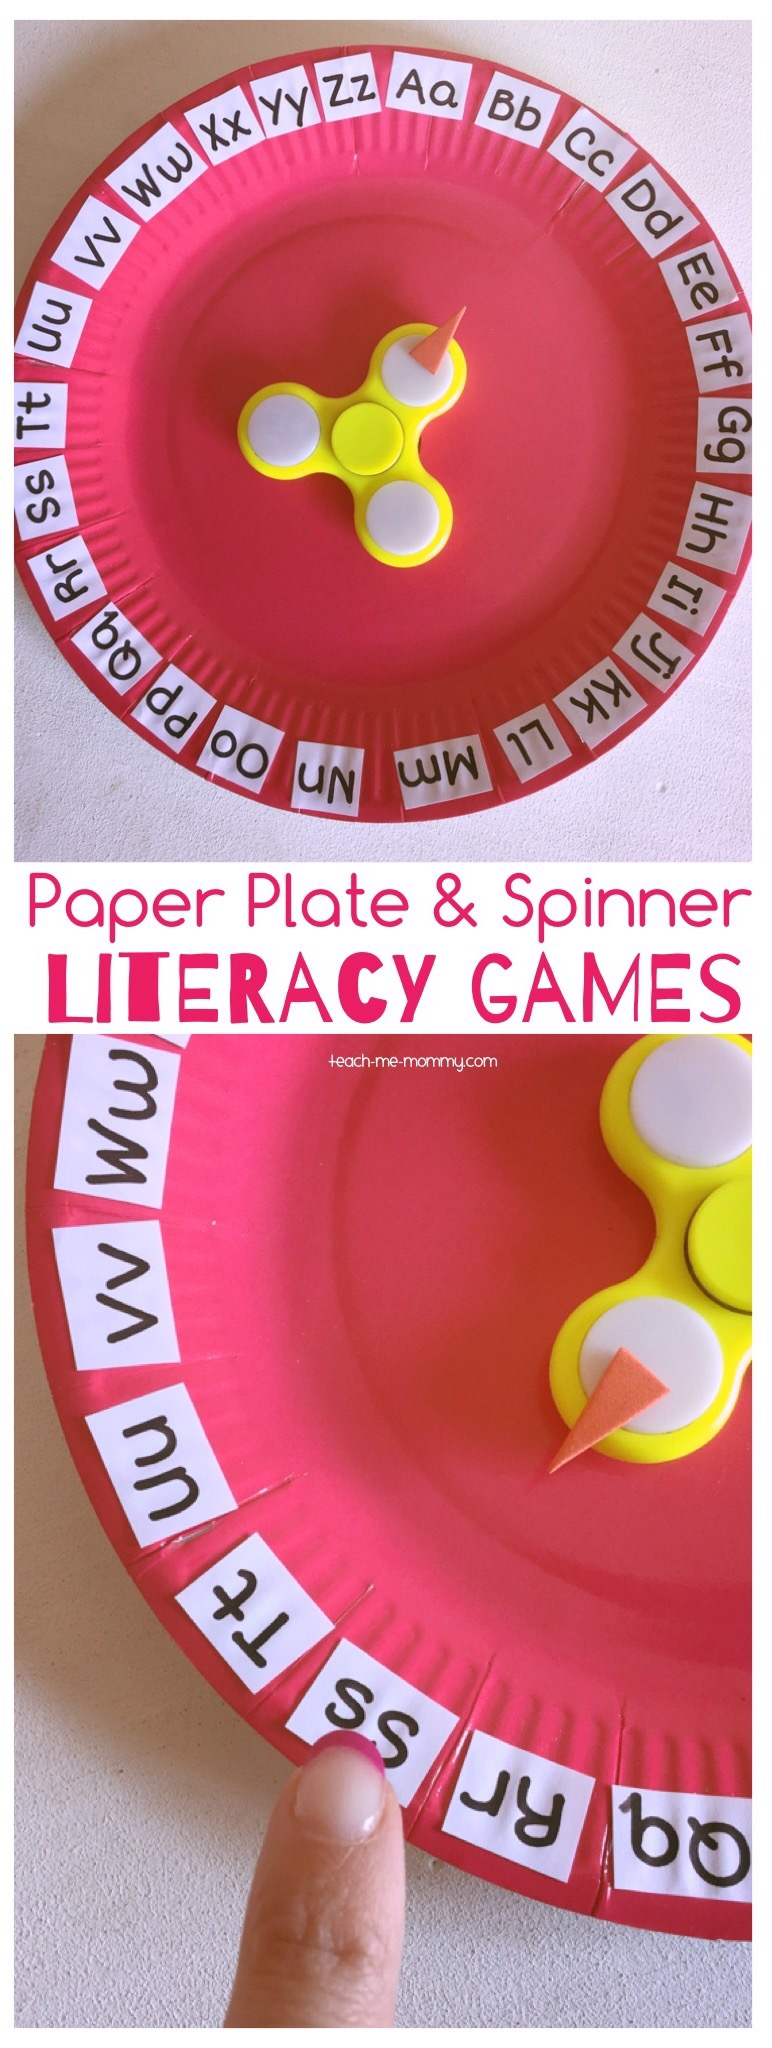 Paper Plate and spinner games